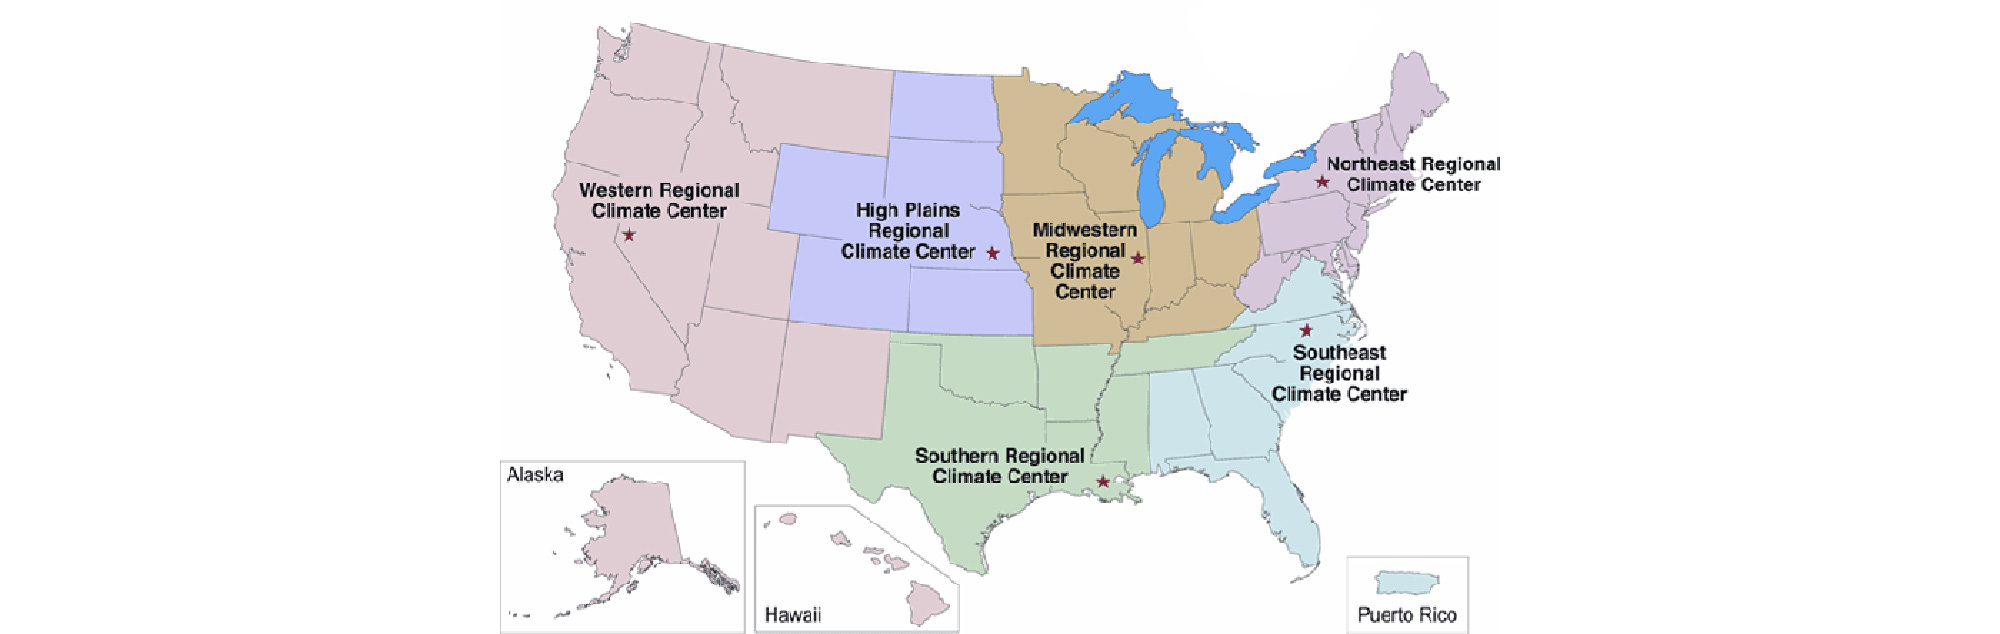 Map showing the six NOAA Regional Climate Centers.